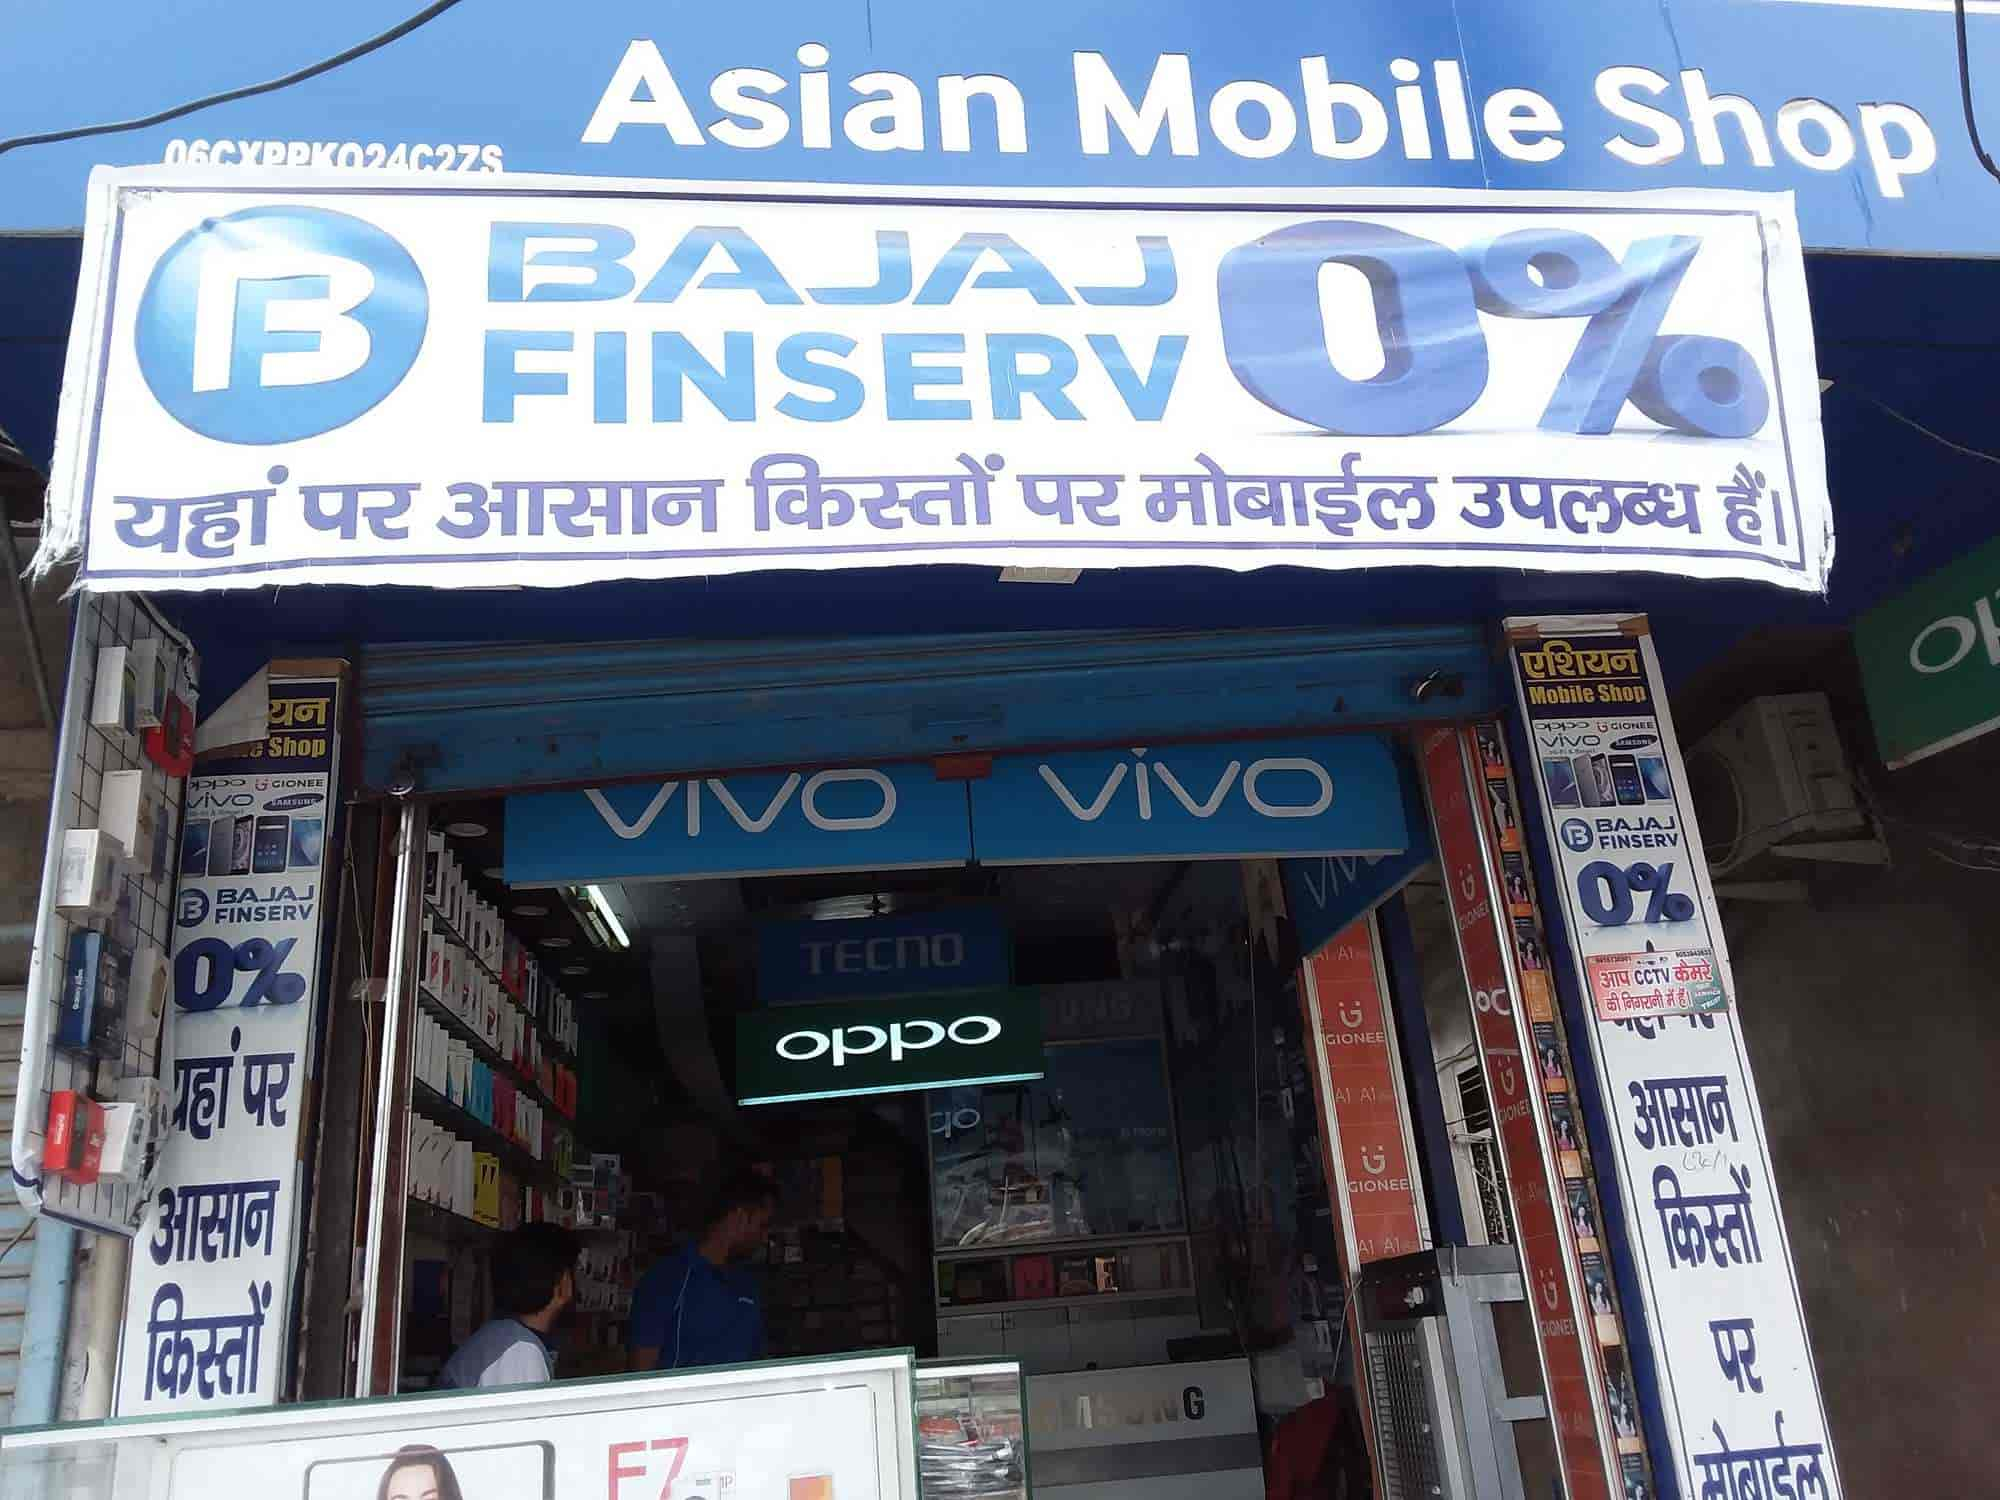 asian-mobile-shop-jind-ho-jind-mobile-phone -dealers-9XUjYvKKpX48Bkb.jpg?interpolation=lanczos-none&output-format=jpg&resize=1024:370&crop=1024:370px;*,*